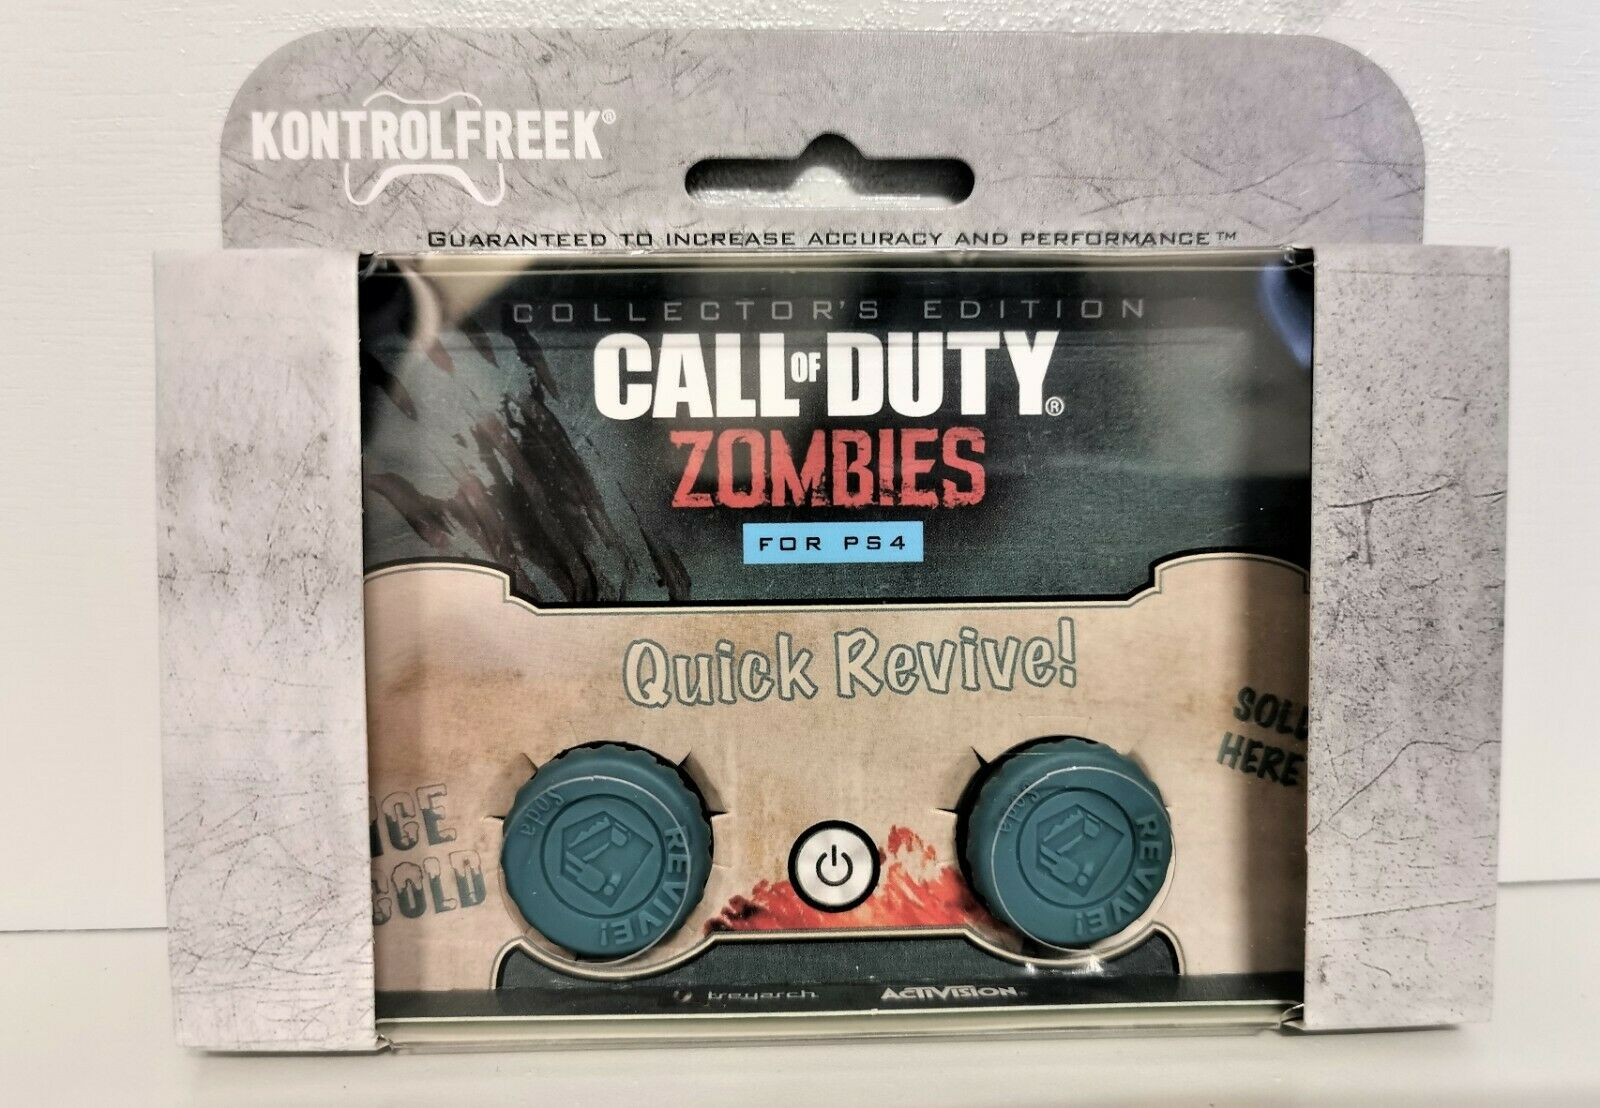 FPS Kontrol Freek Call of Duty Zombies Quick Revive Collectors Edition PS4 Grips